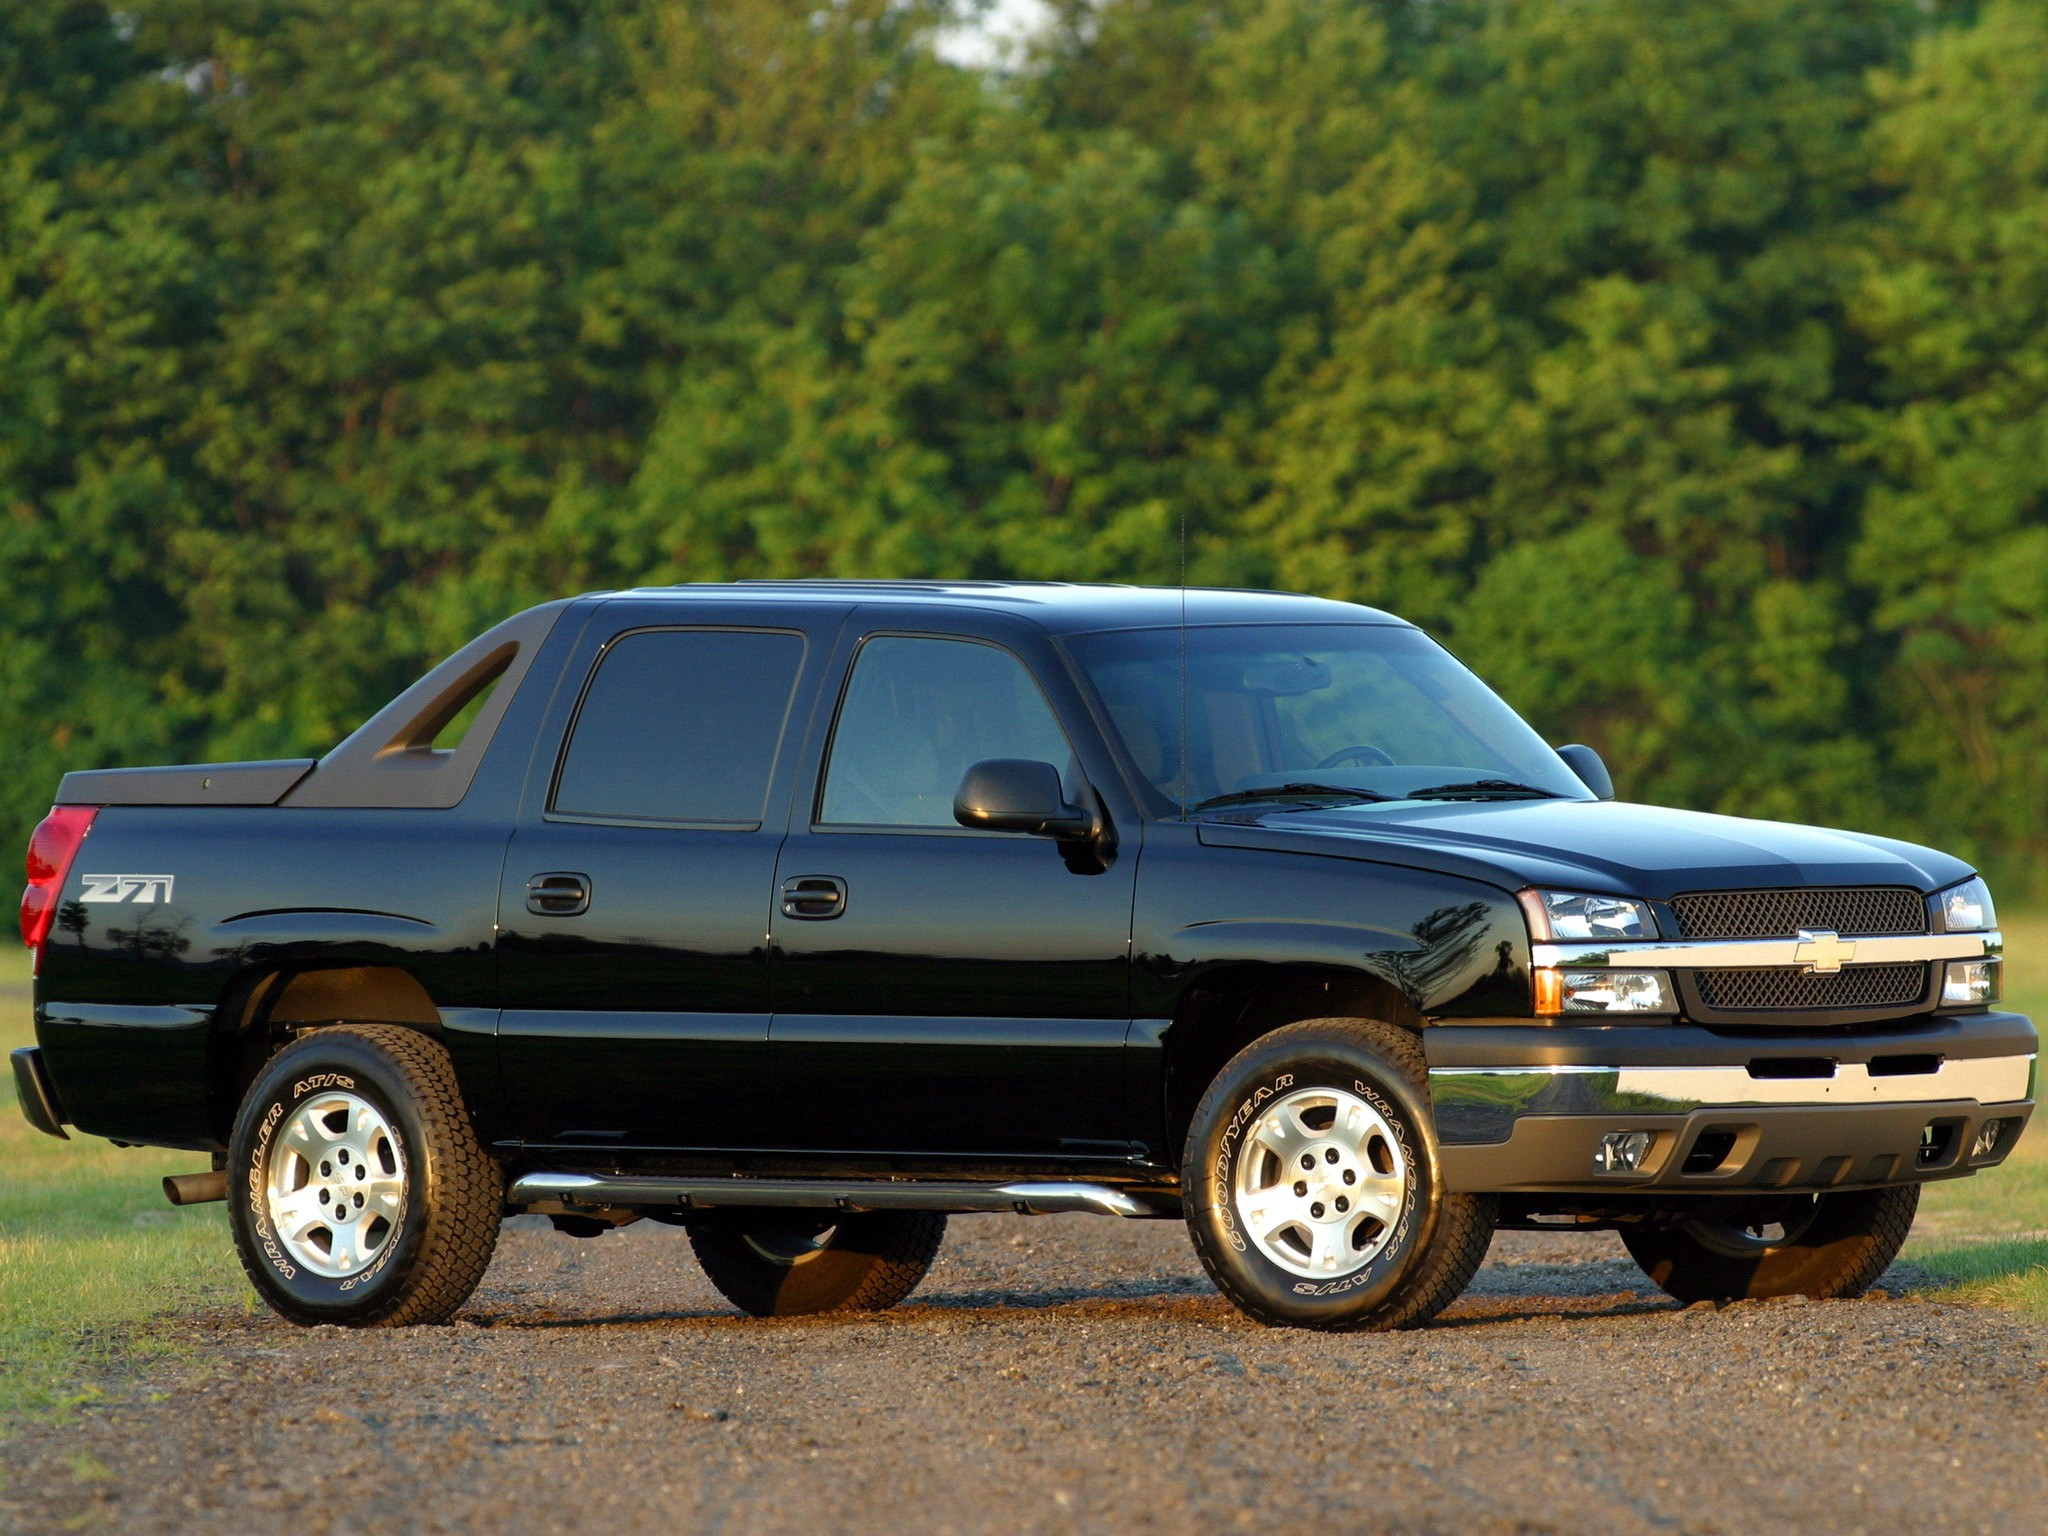 2001 - 2006 Chevrolet Avalanche - Picture 467350 | truck ...